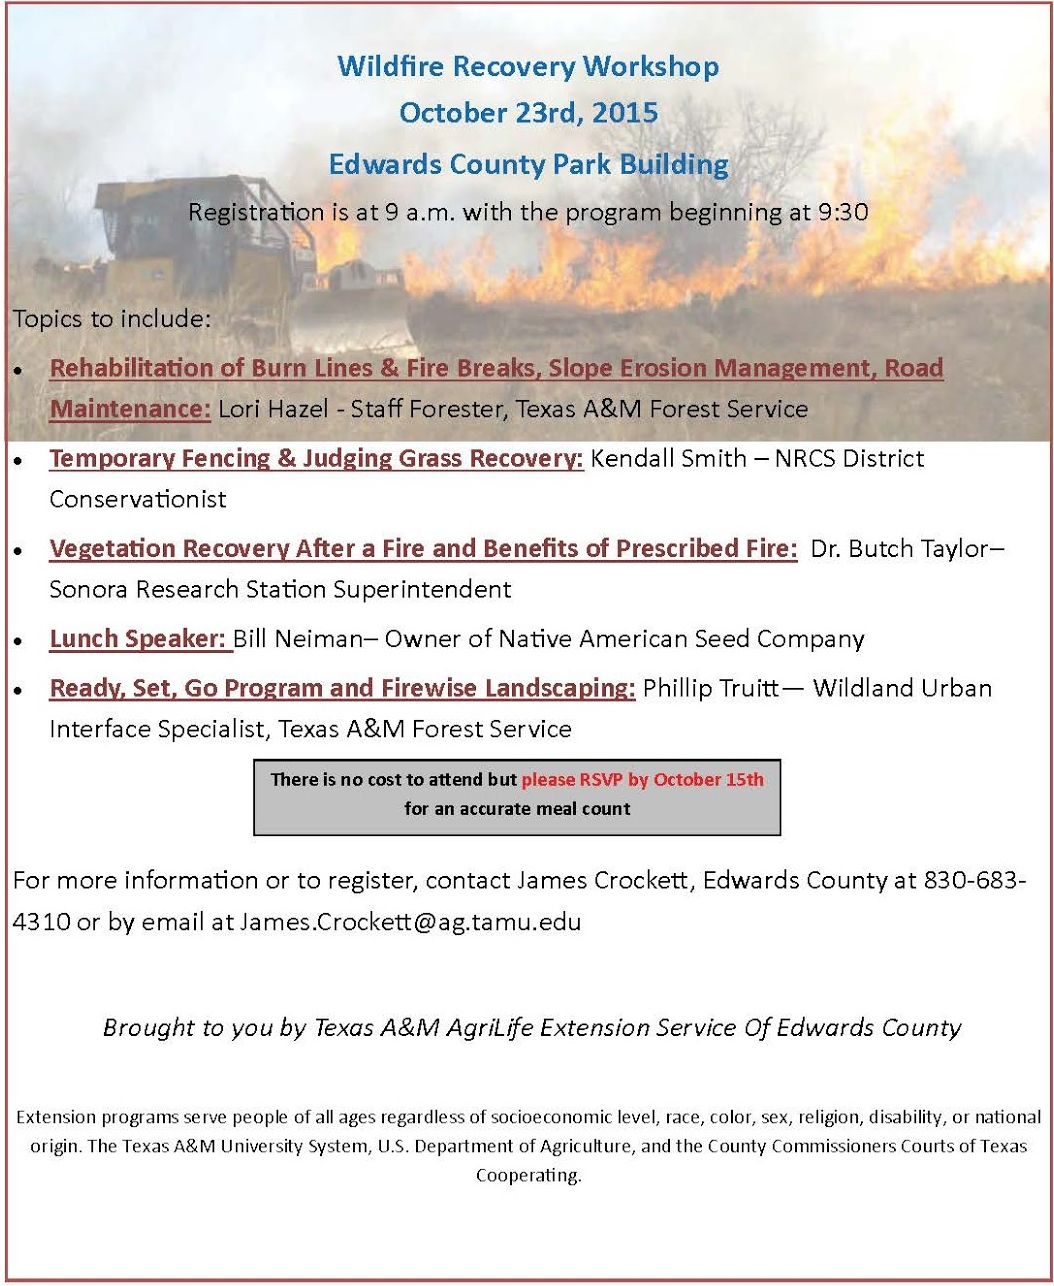 Wildfire Recovery Flyer